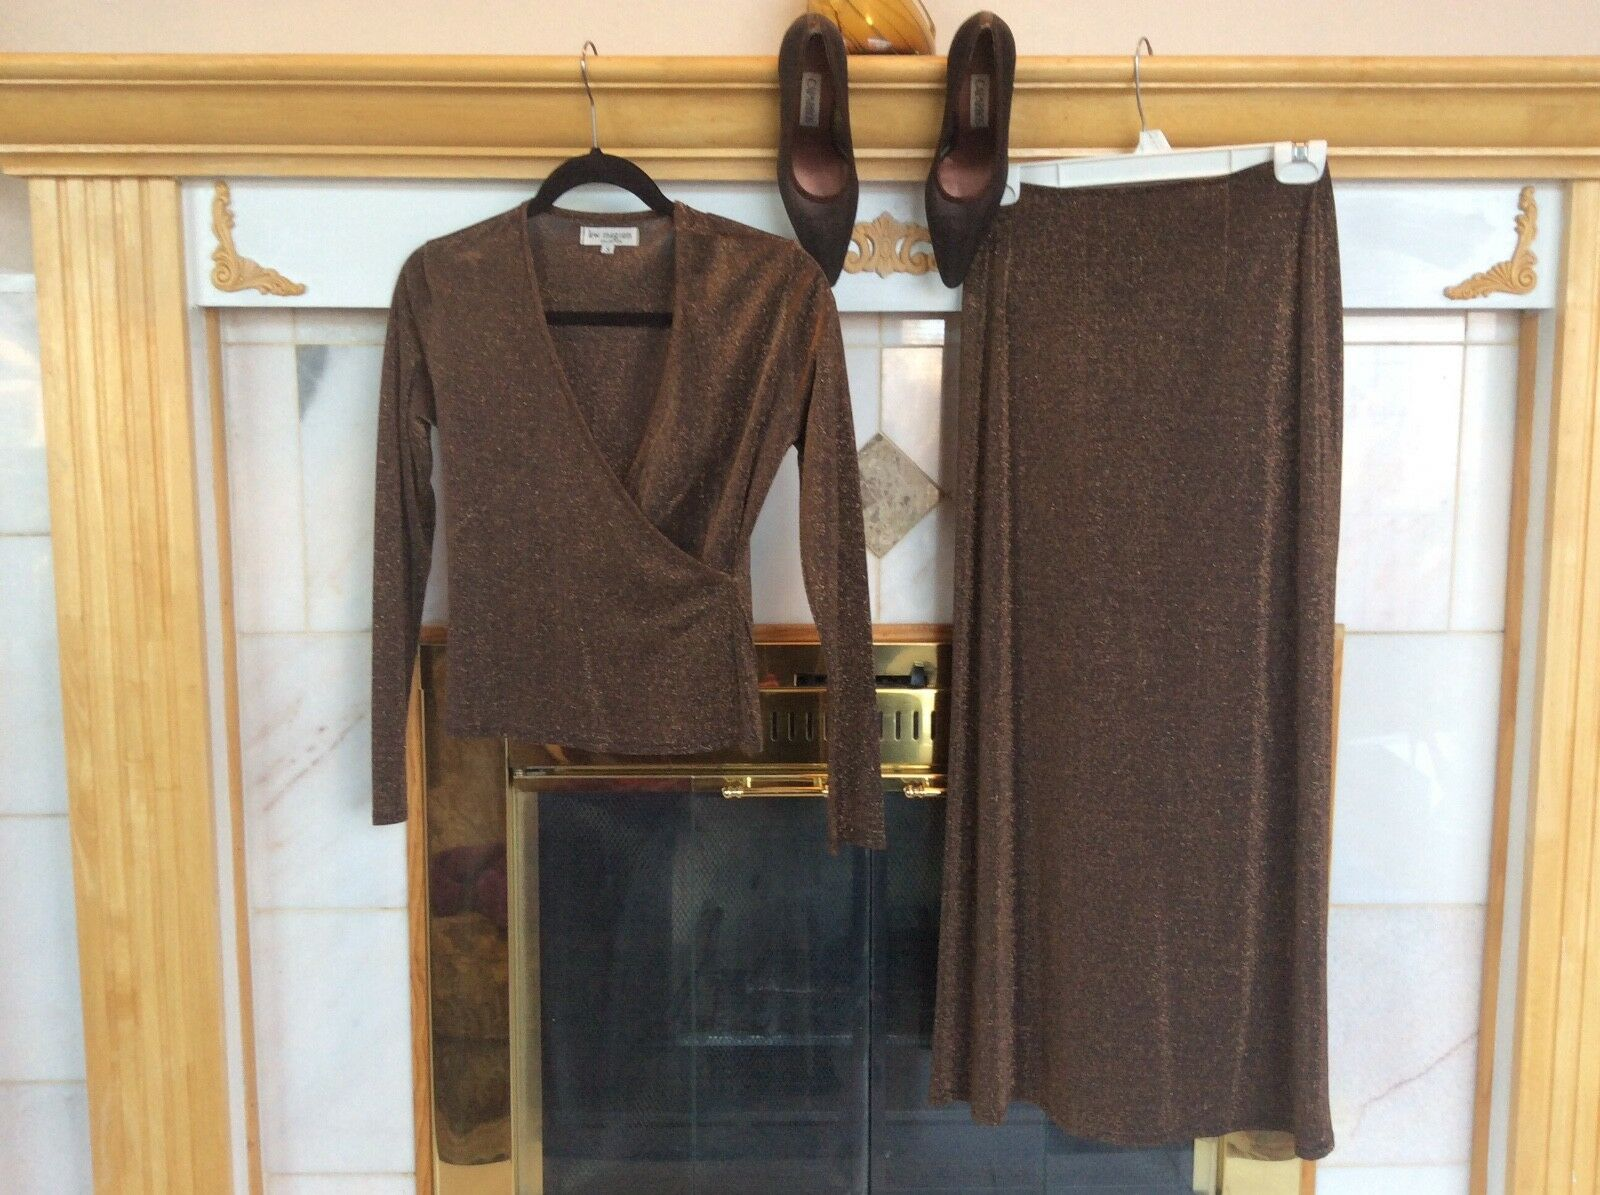 Lew Magram skirt set with Caparros bronze metallic shoes slightly used